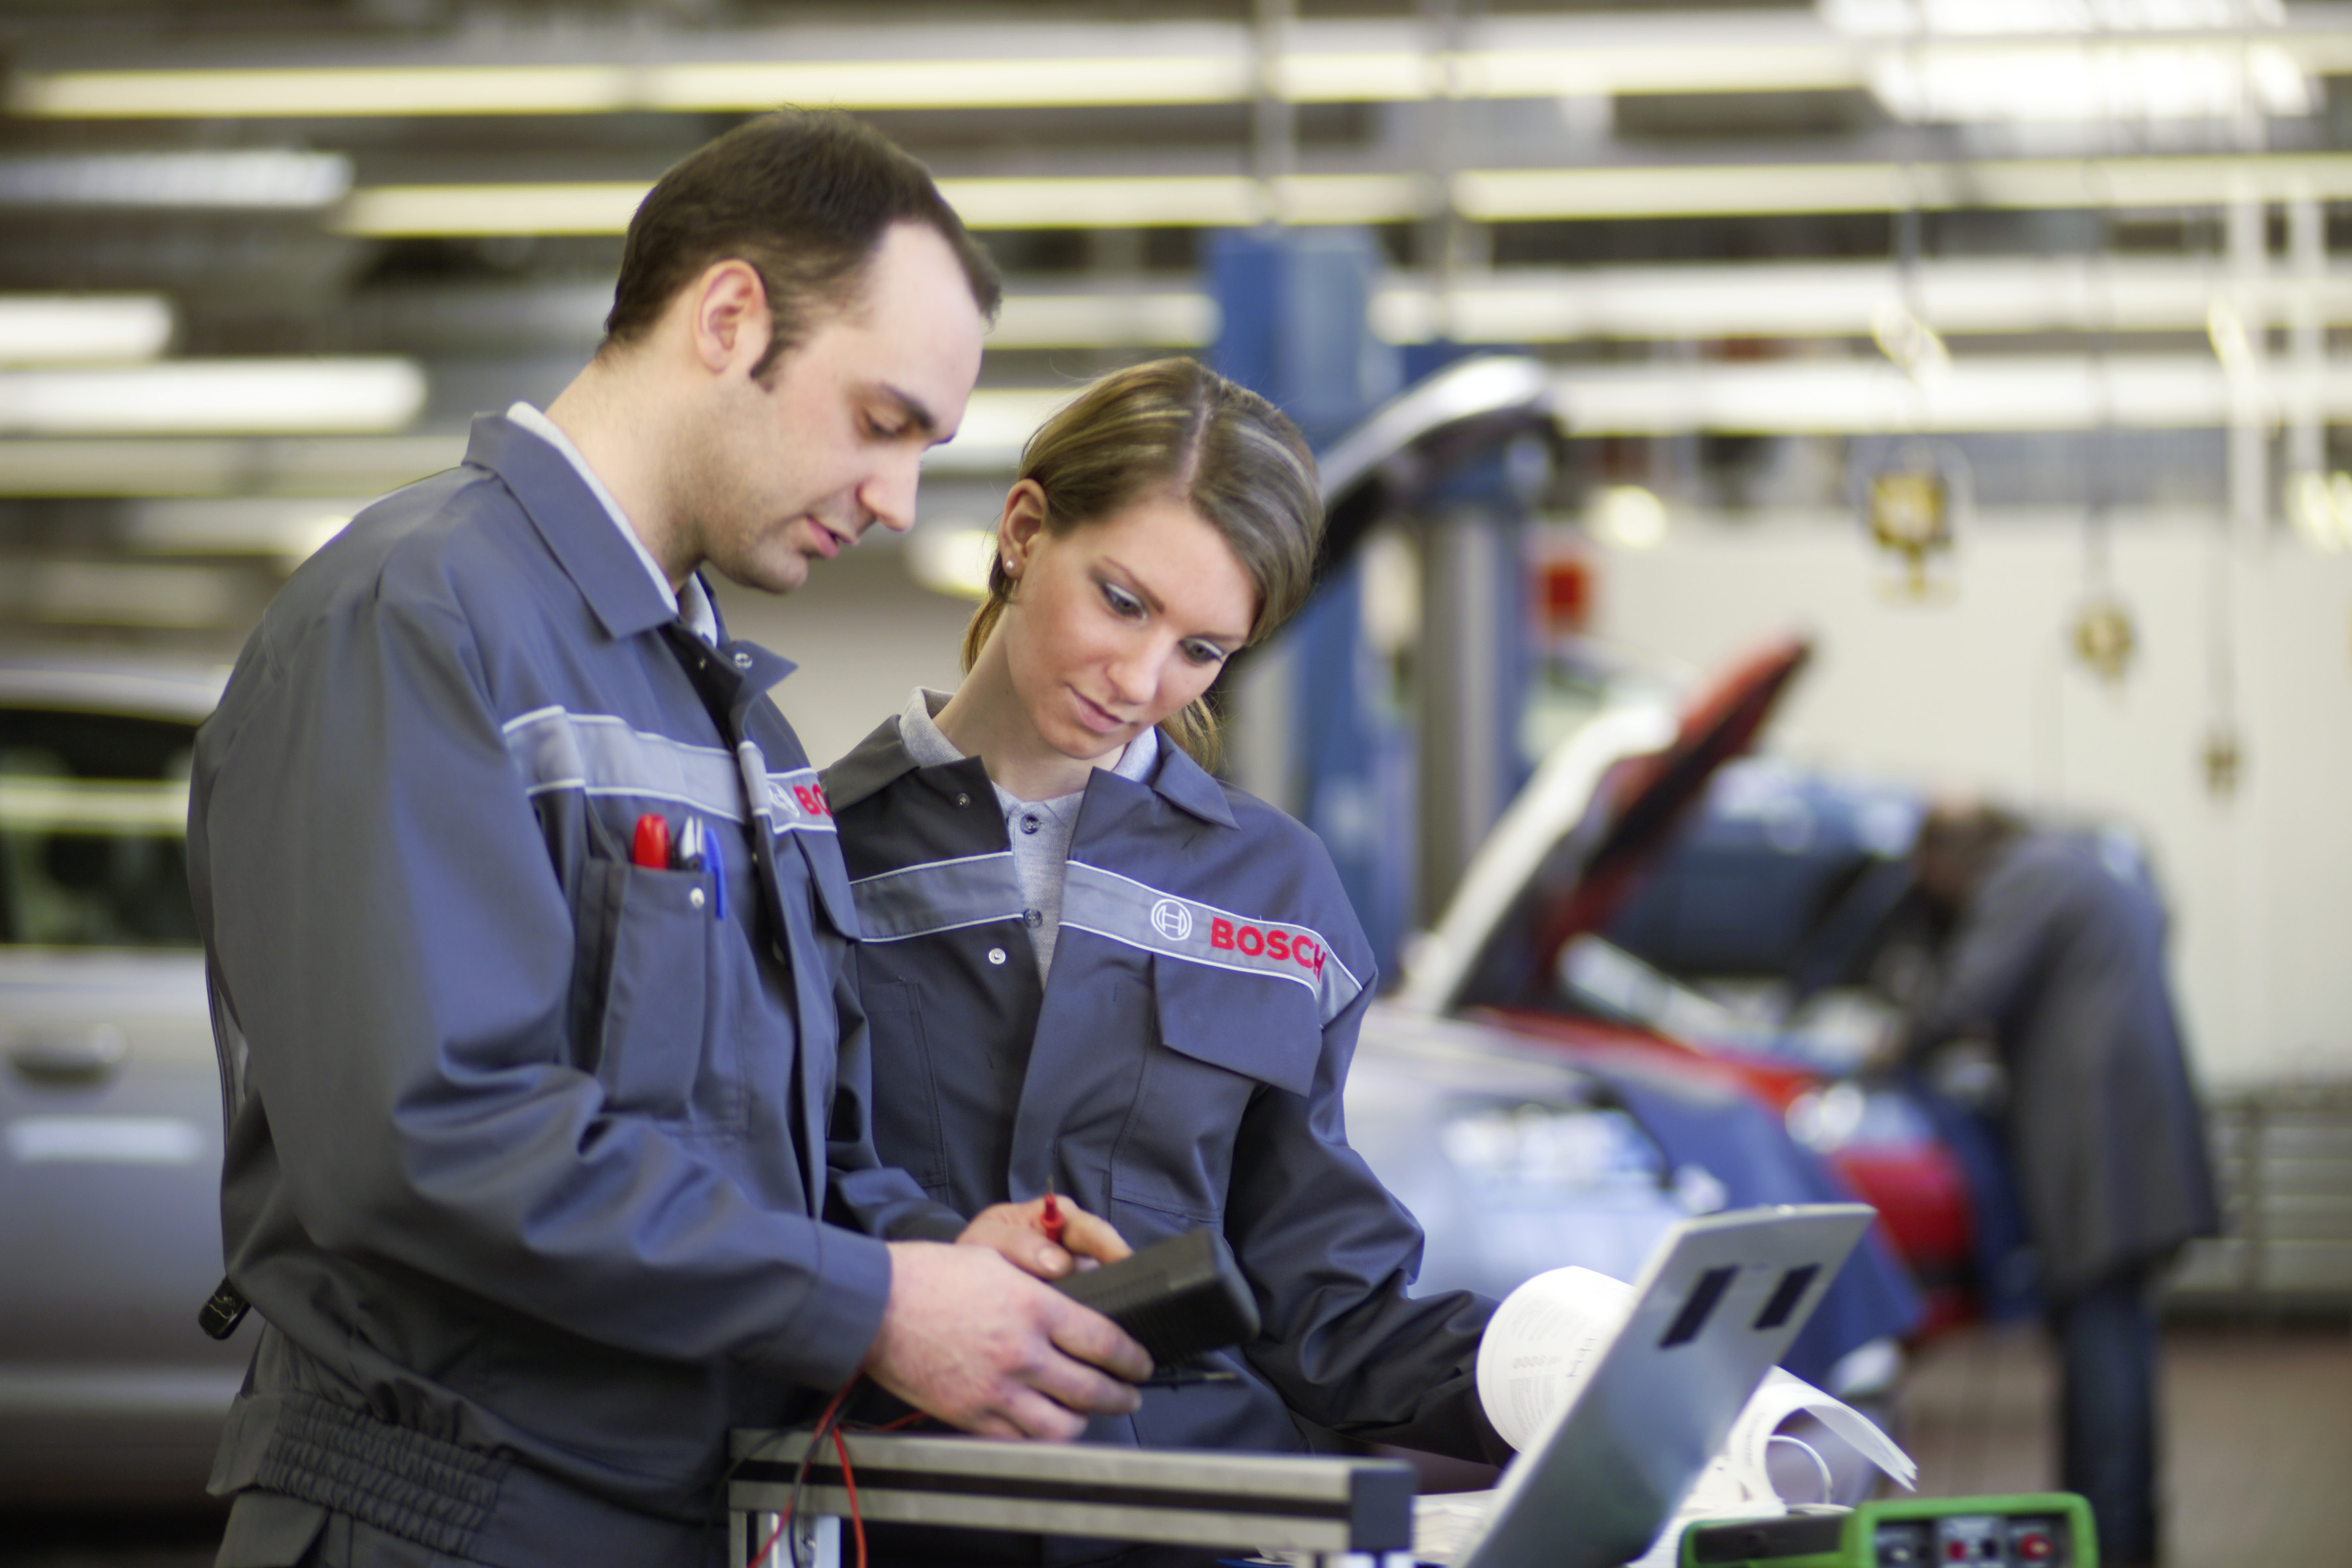 Bosch offers over 100 practice-oriented trainings for workshops